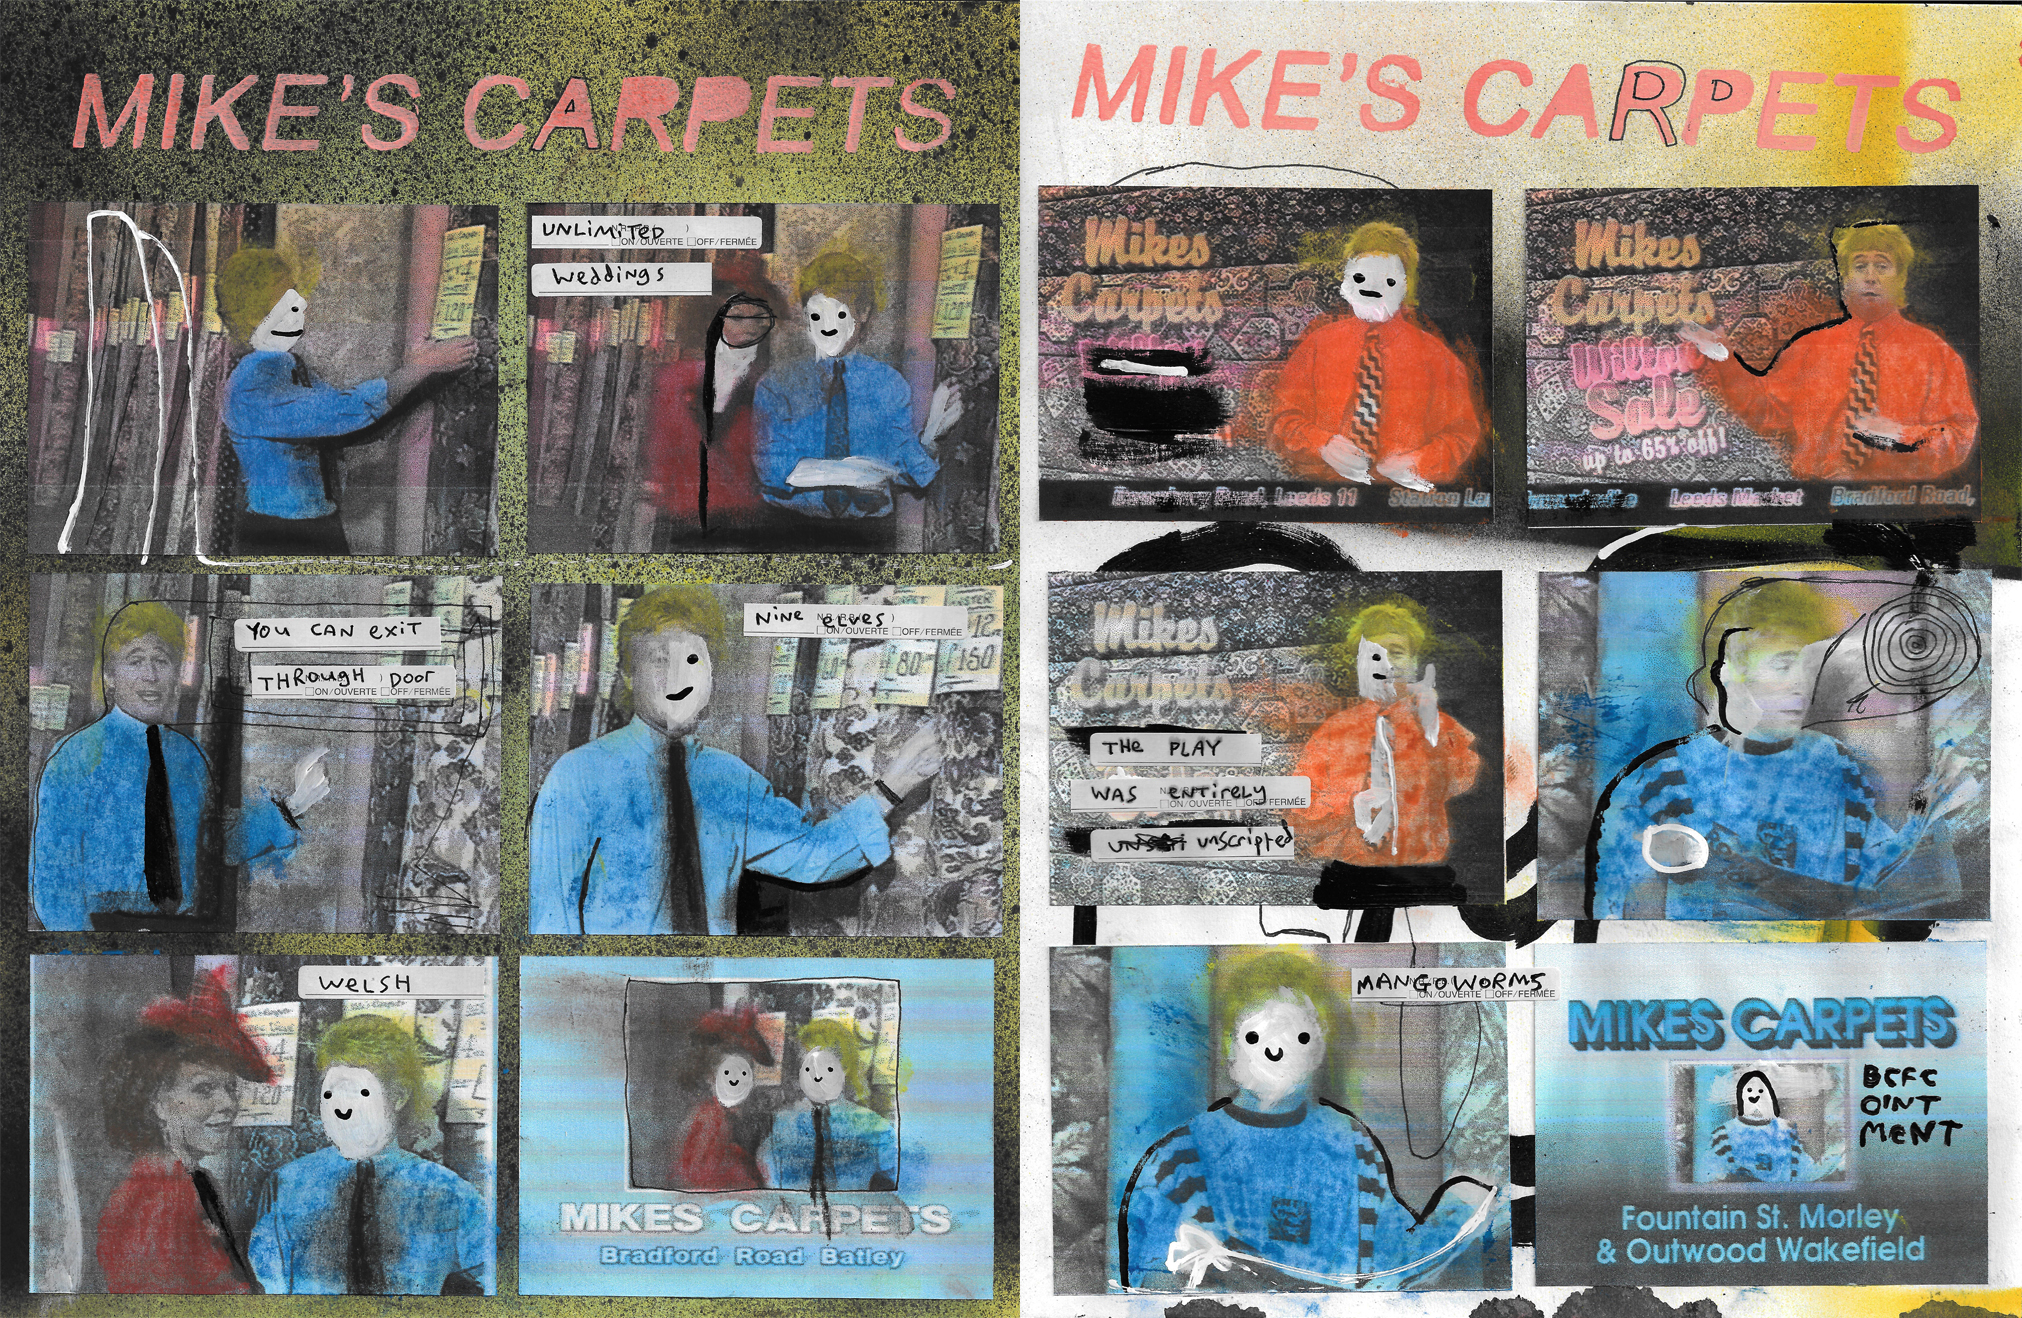 MIKES CARPETS